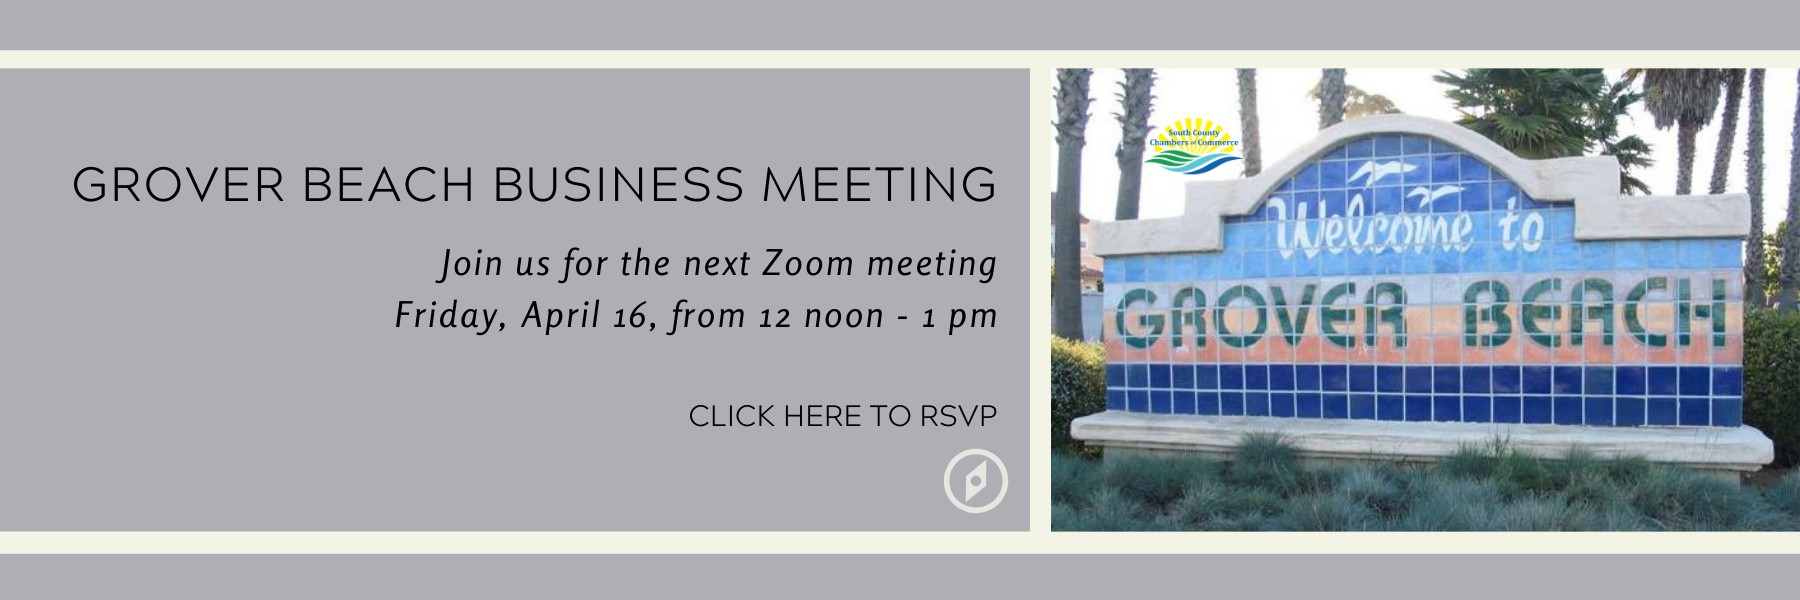 Web-panel-for-Grover-Beach-Business-Meeting(5).png